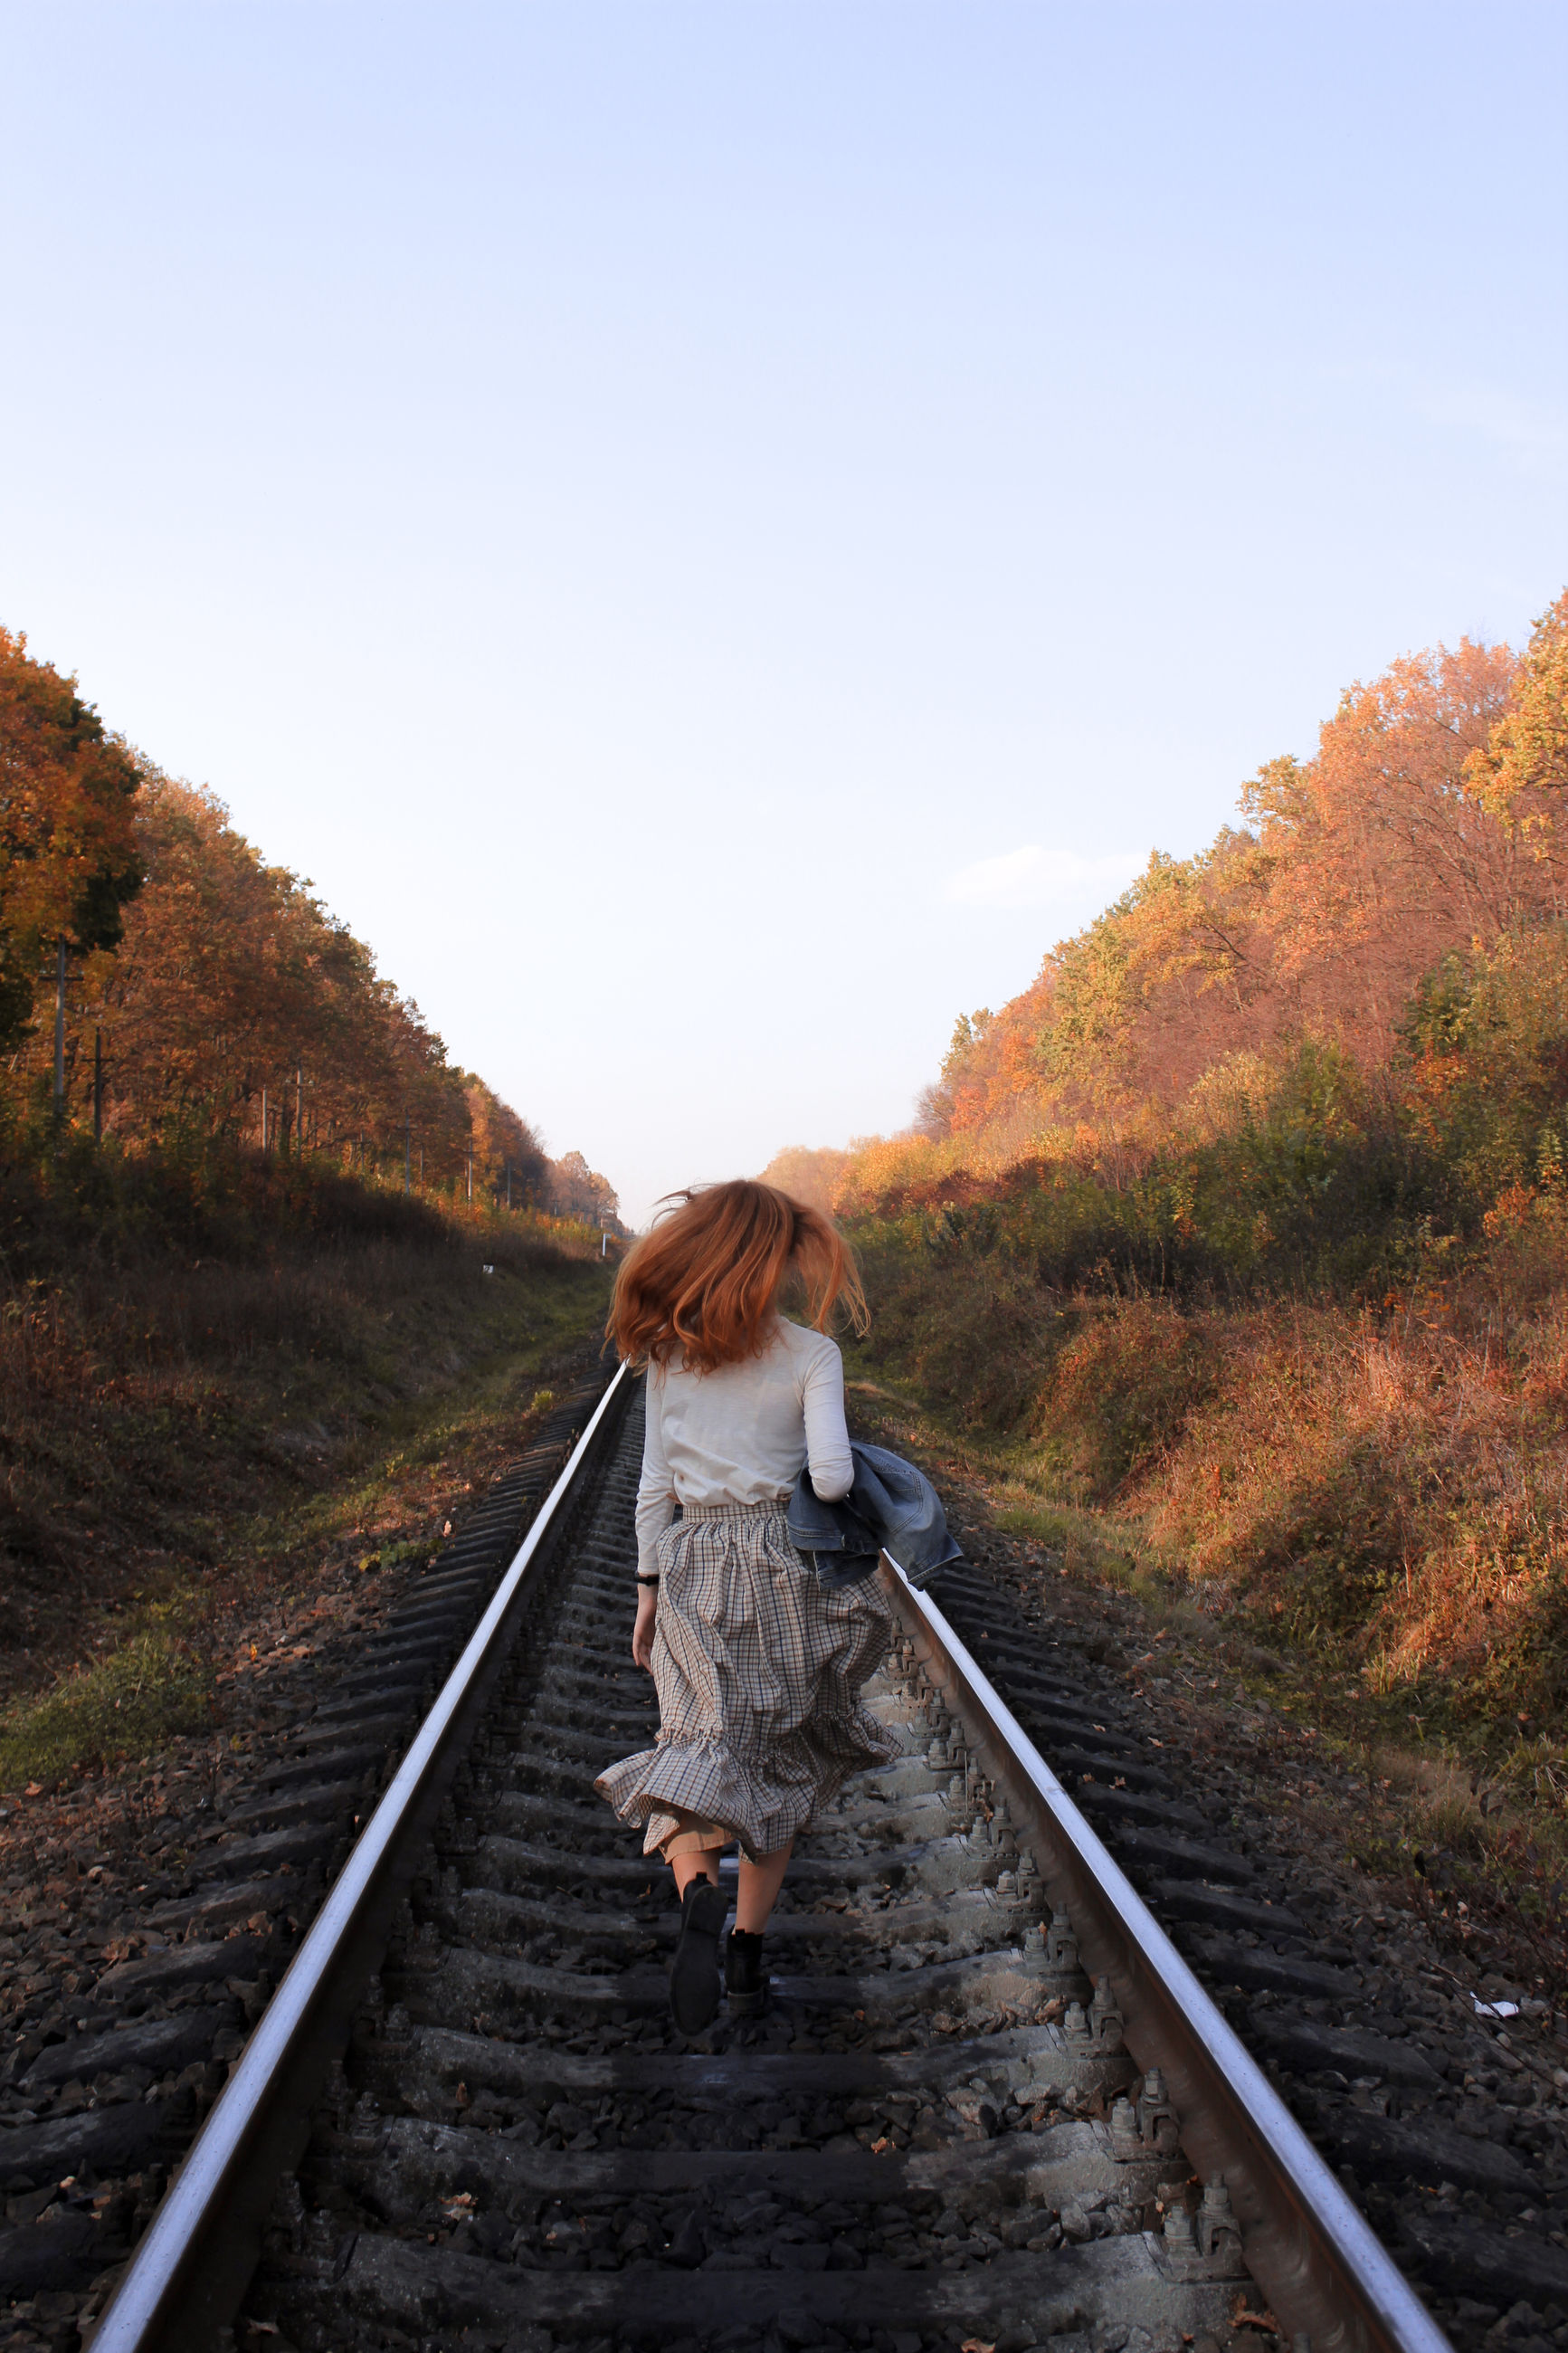 one person, tree, railroad track, sky, rail transportation, track, full length, the way forward, direction, real people, nature, leisure activity, rear view, lifestyles, plant, transportation, casual clothing, day, women, walking, hairstyle, outdoors, change, diminishing perspective